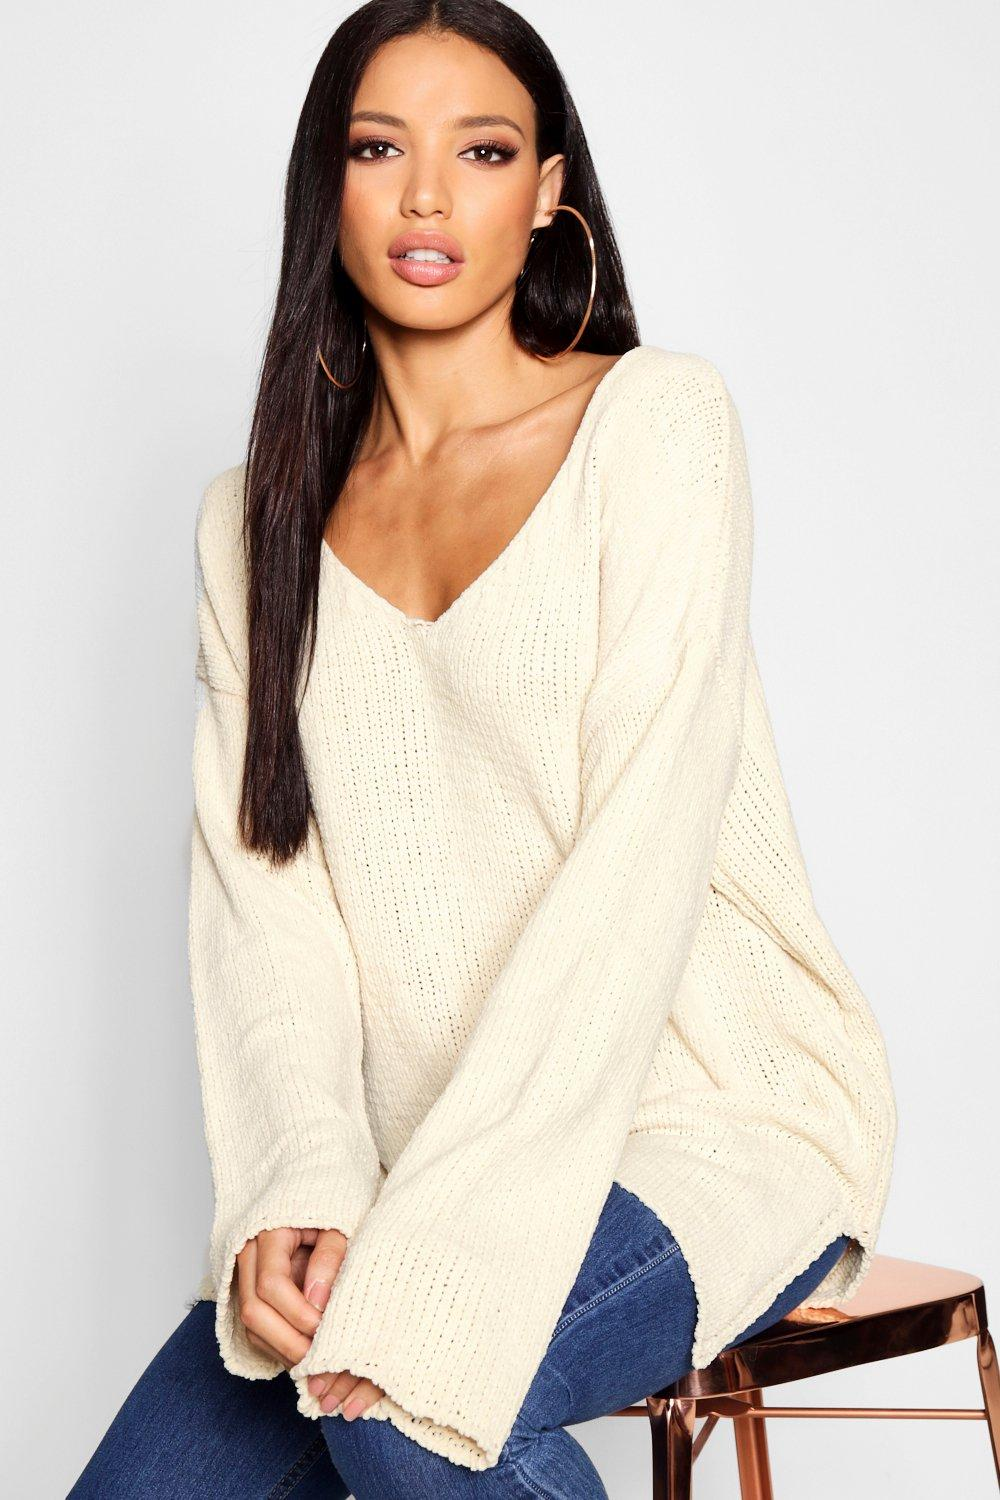 Chenille V Neck V Jumper Neck cream ROqvxS6w